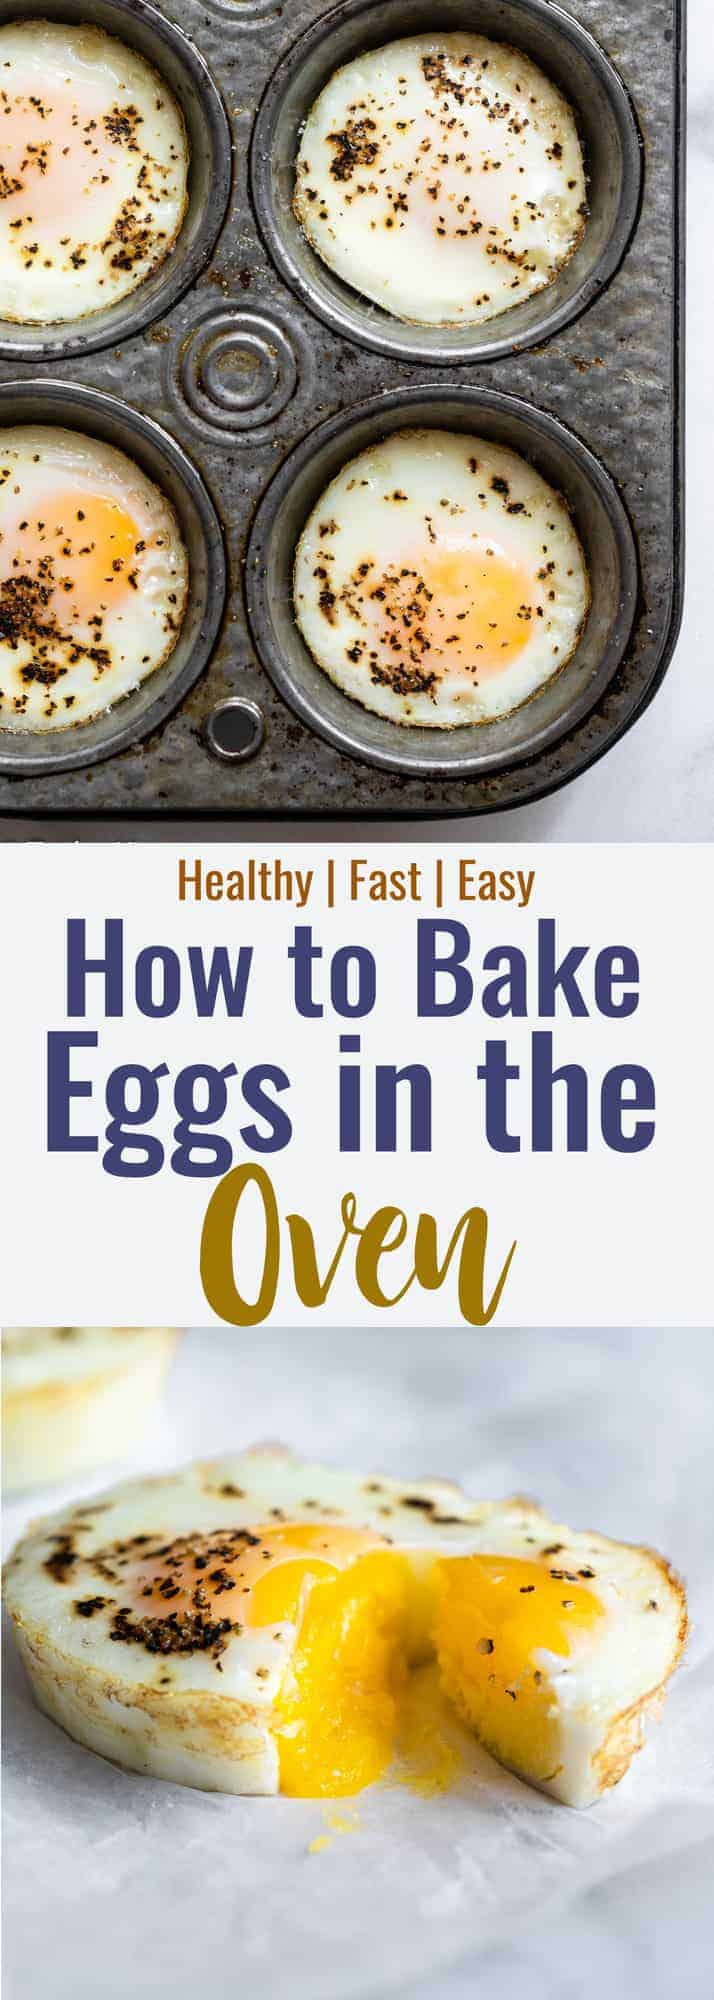 how to cook eggs in the oven pic nocompress